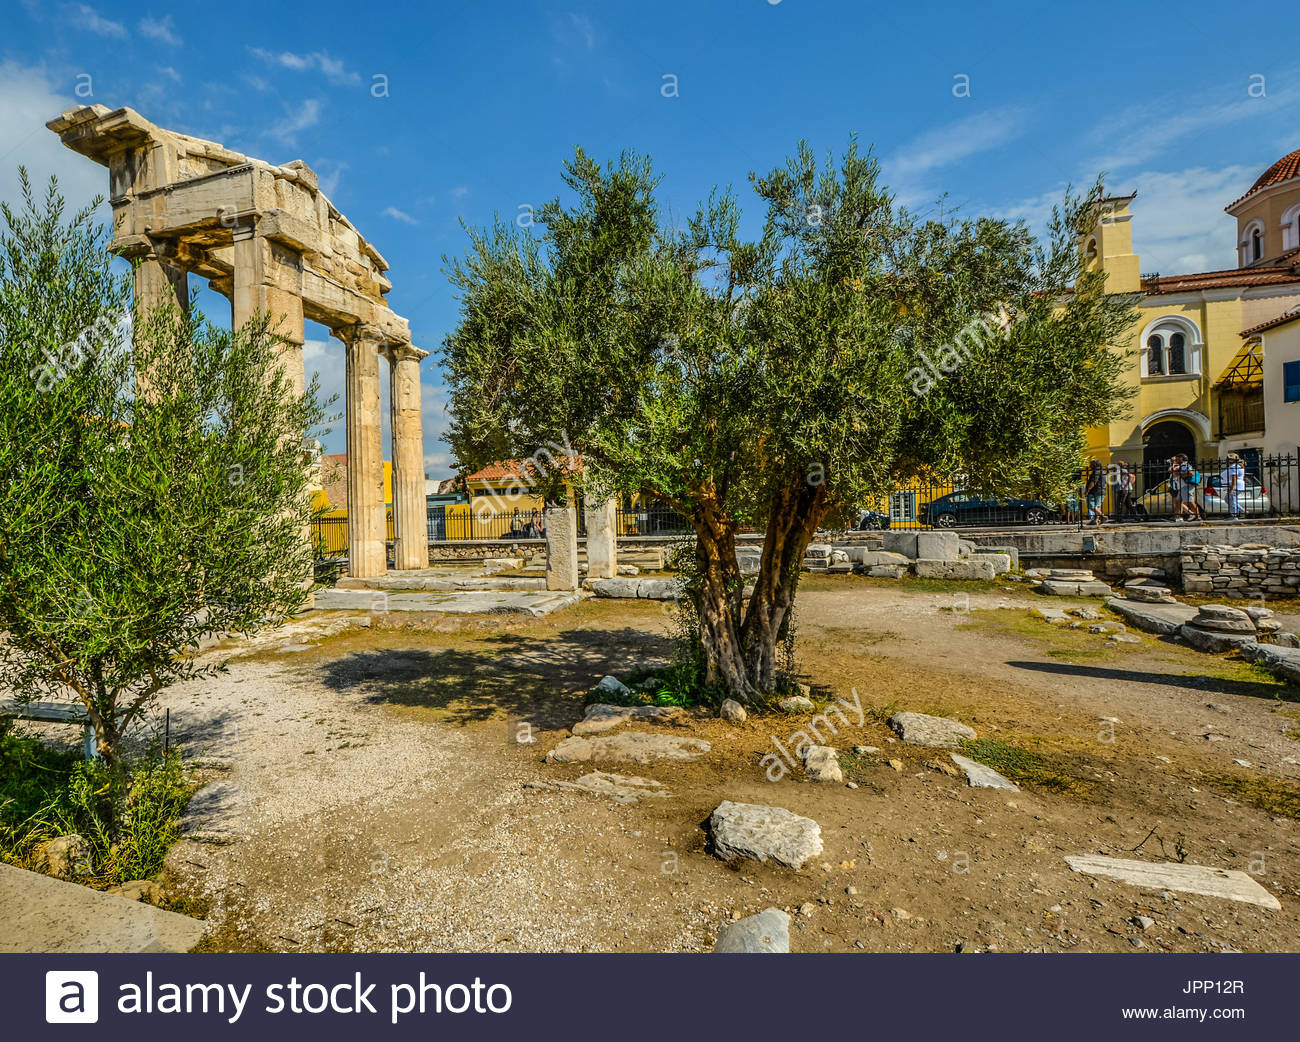 The Gate of Athena Archegetis in the Roman Agora in Athens Greece on a warm summer day with an olive tree in the foreground - Stock Image